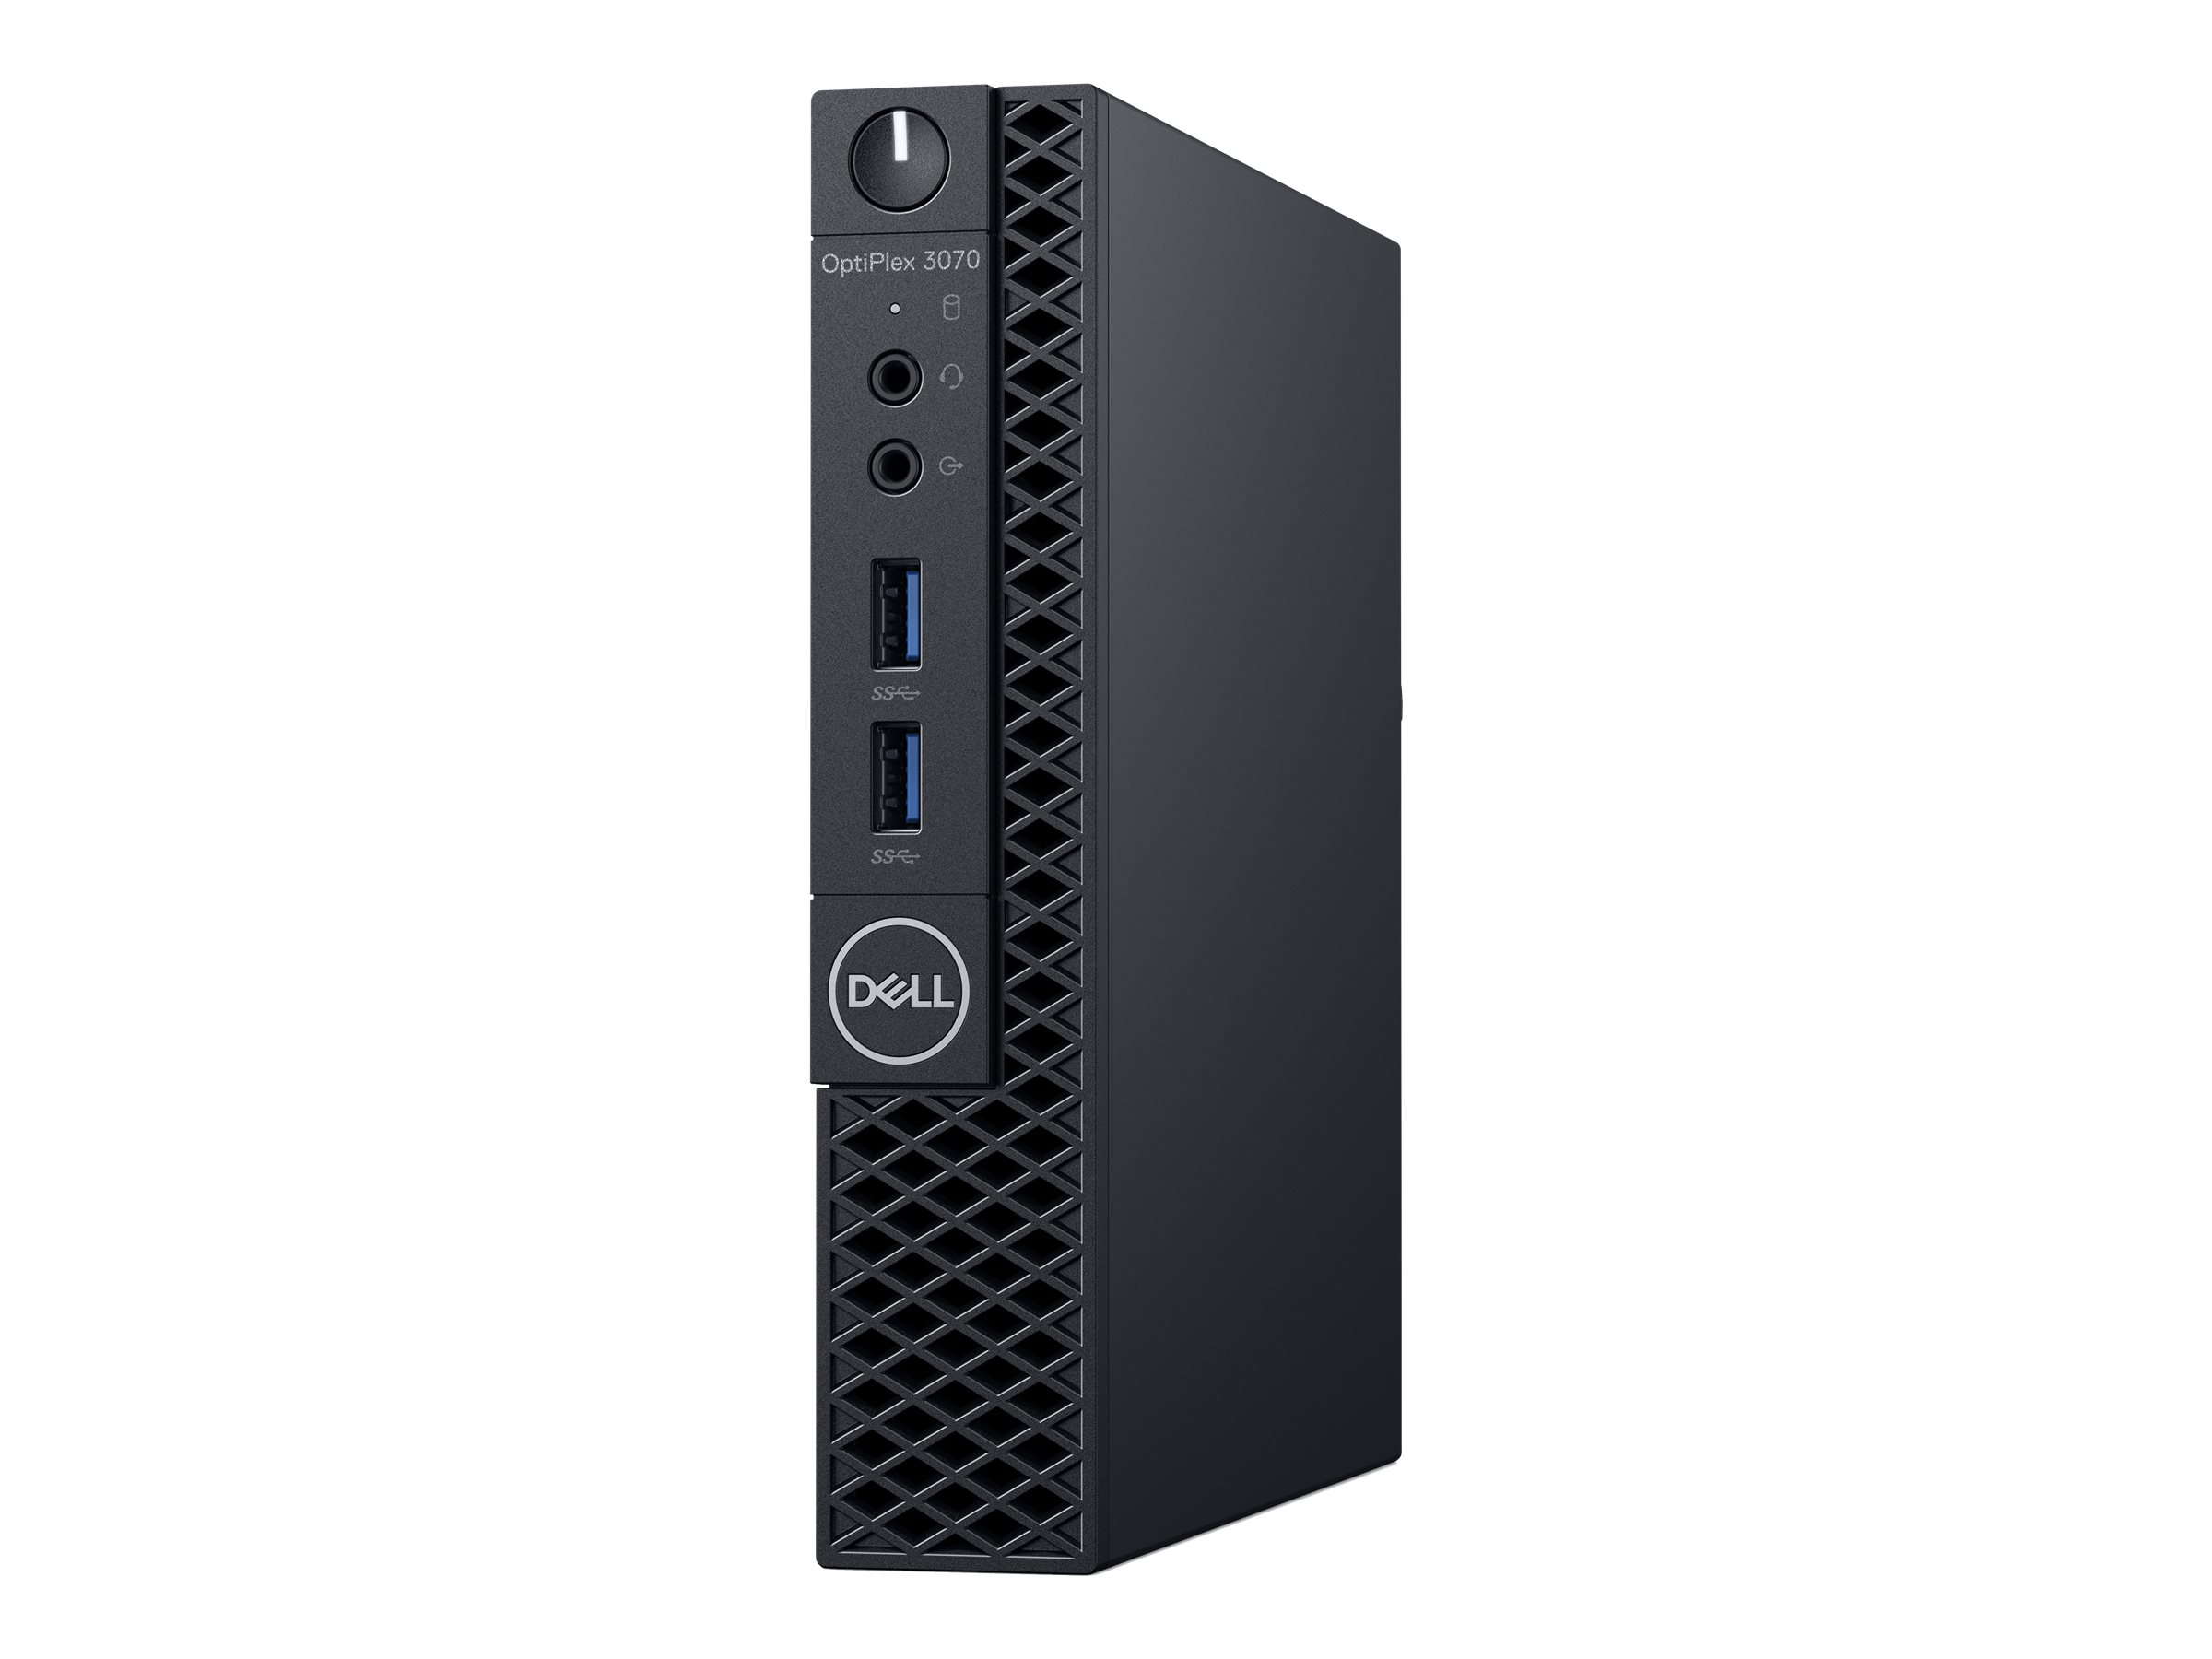 Dell OptiPlex 3070 - Micro - Core i5 9500T / 2.2 GHz - RAM 8 GB - SSD 256 GB - UHD Graphics 630